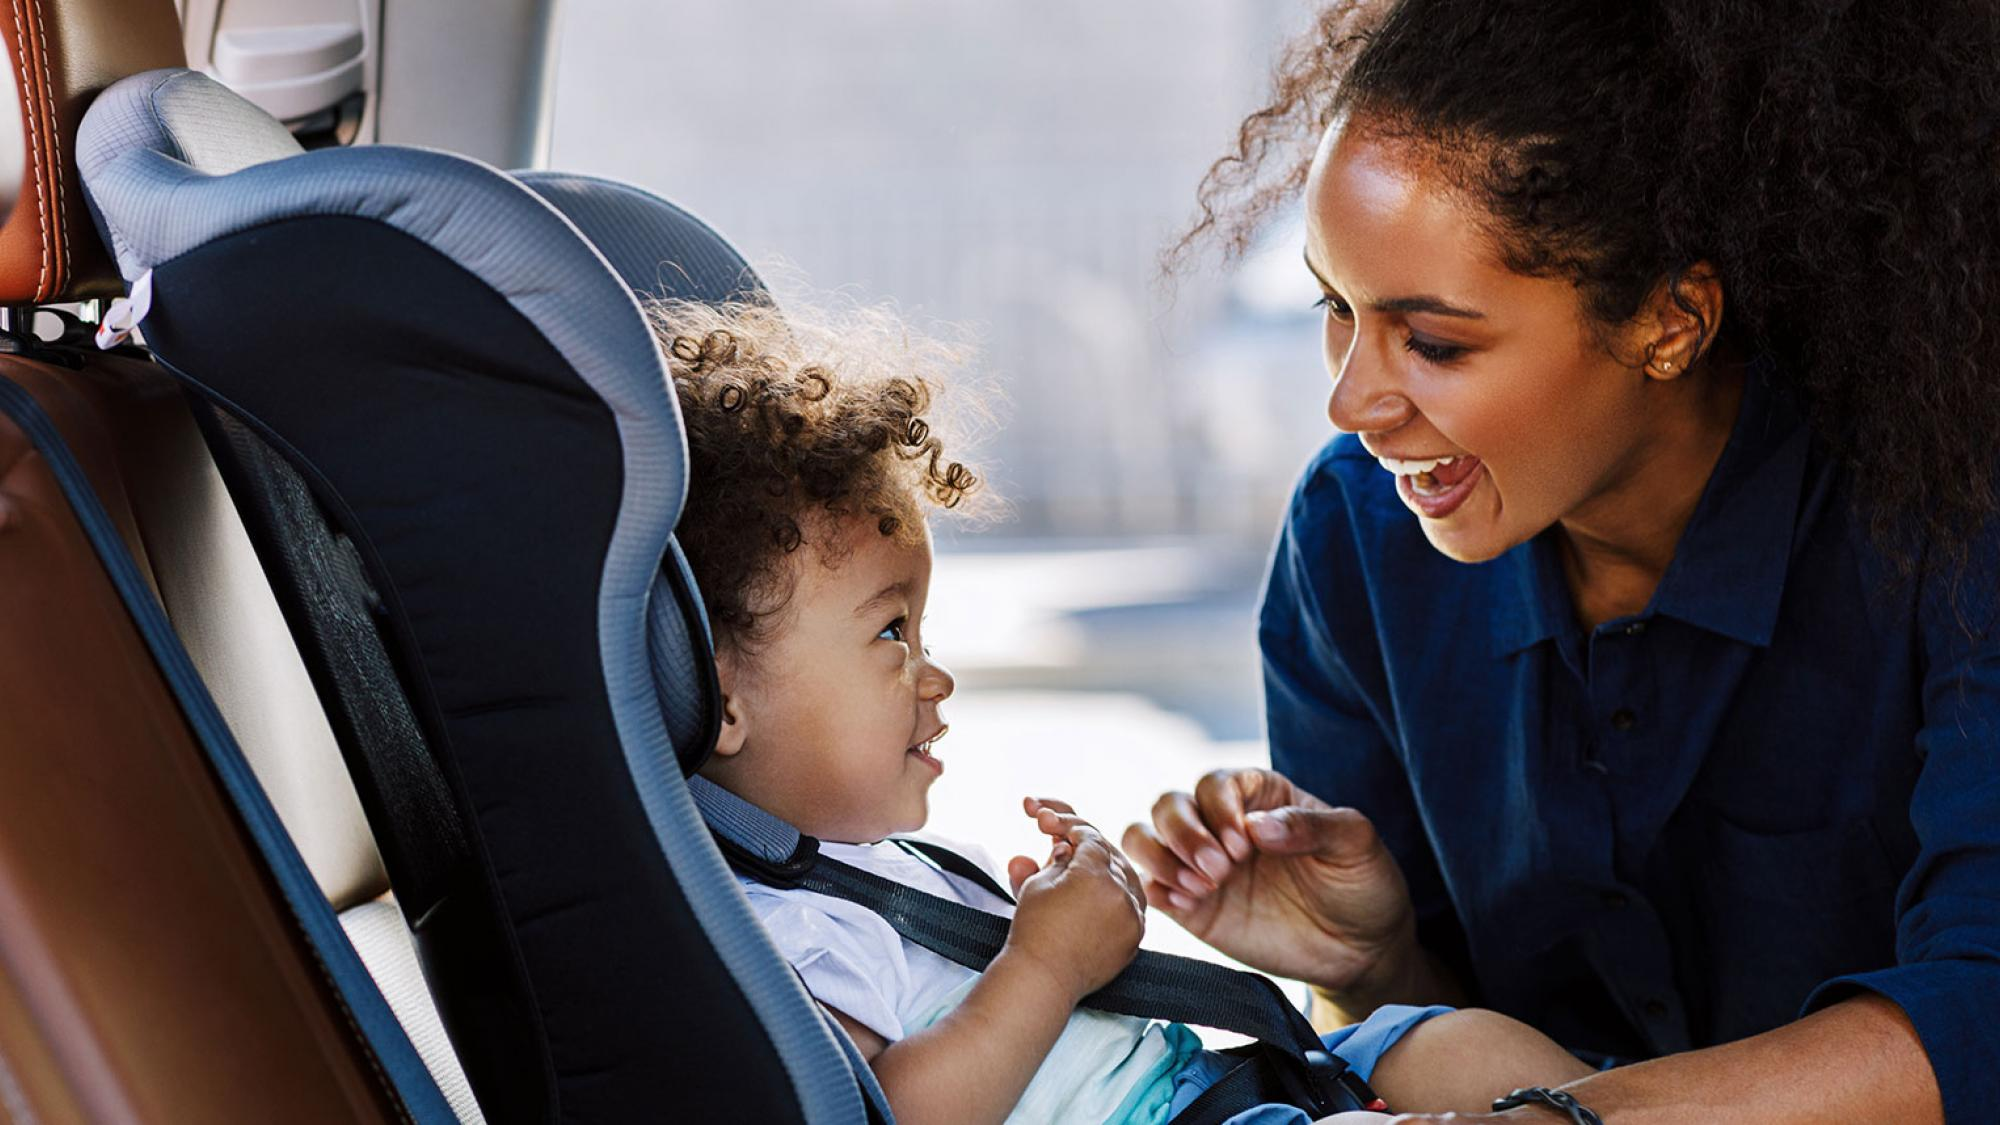 Woman putting baby in car seat and smiling